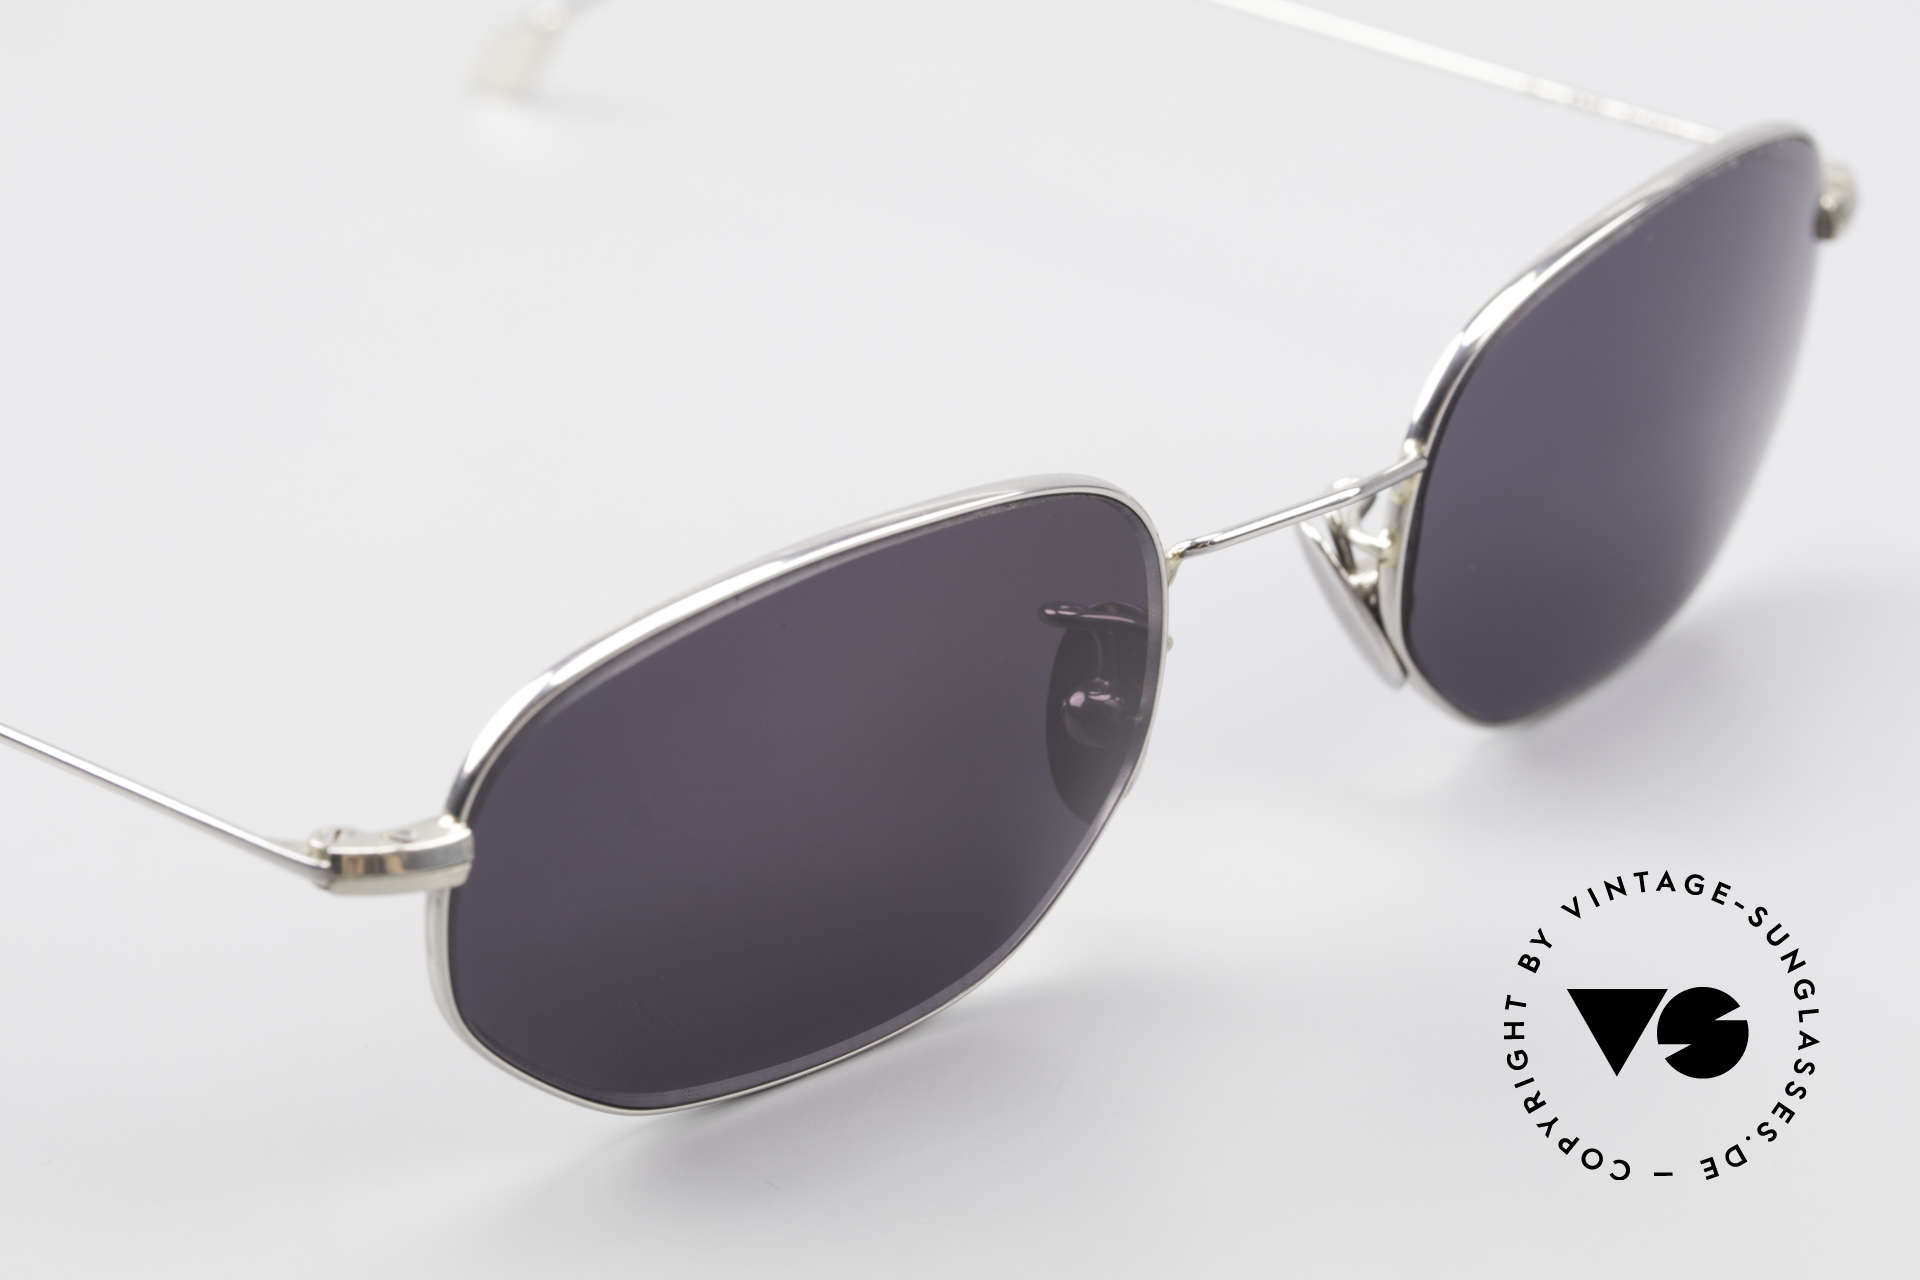 Cutler And Gross 0370 Classic Unisex Sunglasses 90s, never worn; like all our vintage Cutler & Gross eyewear, Made for Men and Women